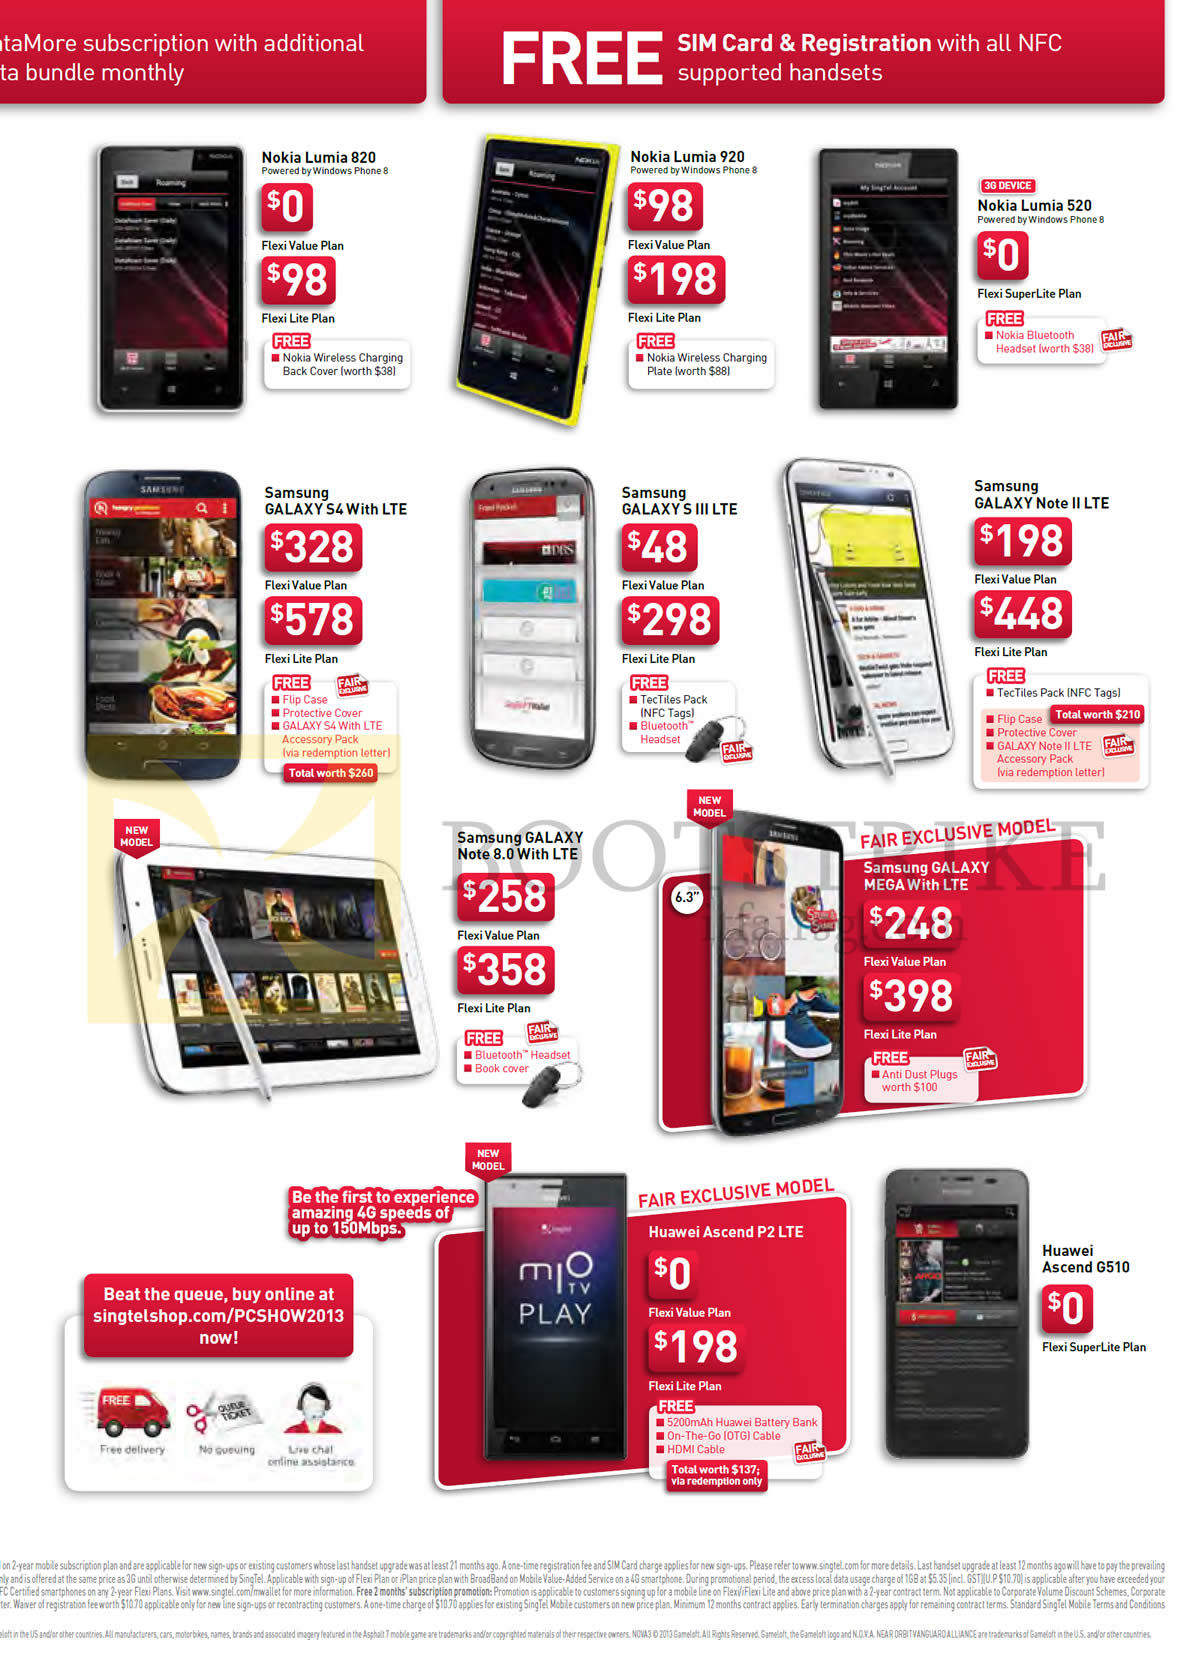 PC SHOW 2013 price list image brochure of Singtel Mobile Nokia Lumia 820, 920, 520, Samsung Galaxy S4, S III LTE, Note II LTE, Note 8.0, Galaxy Mega, Huawei Ascent P2 LTE, G510